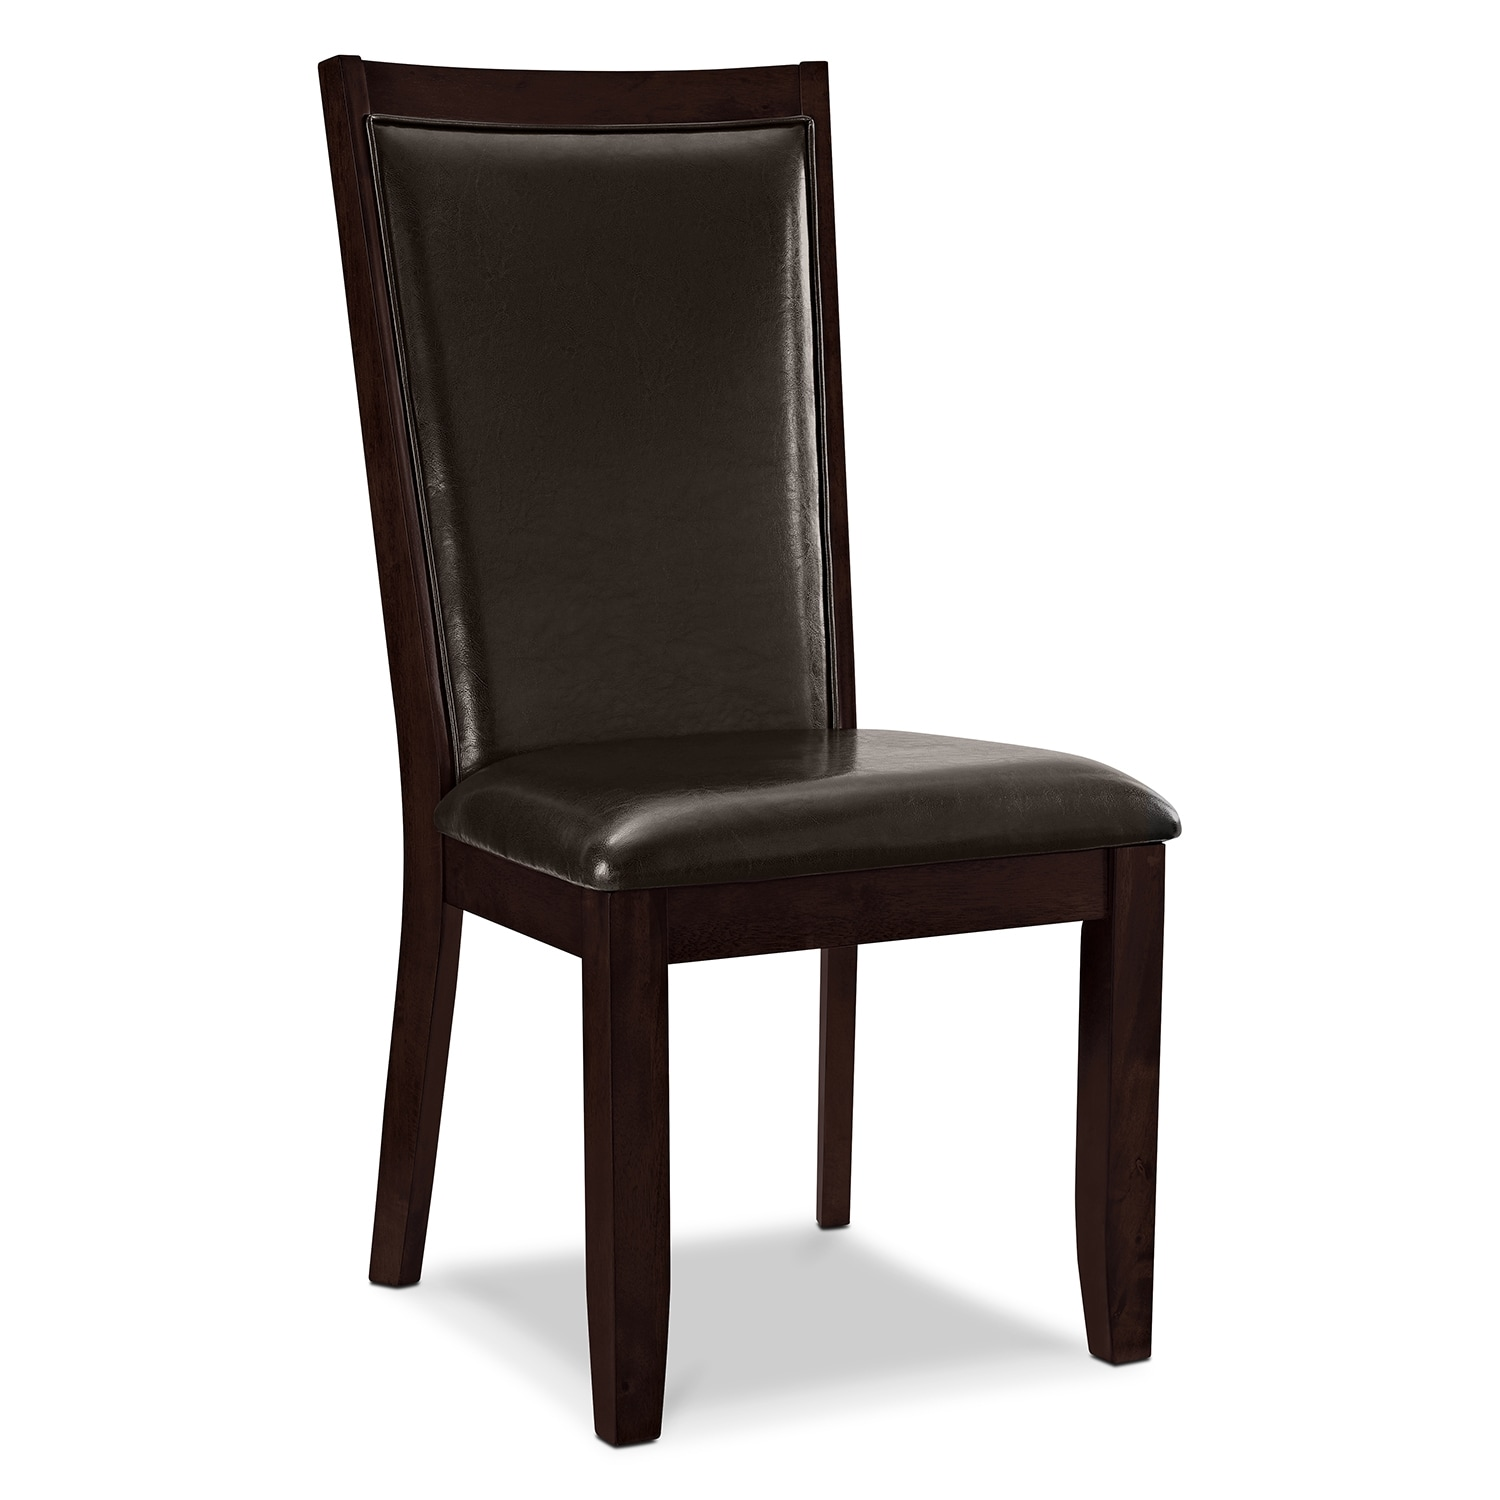 Paragon II Chair